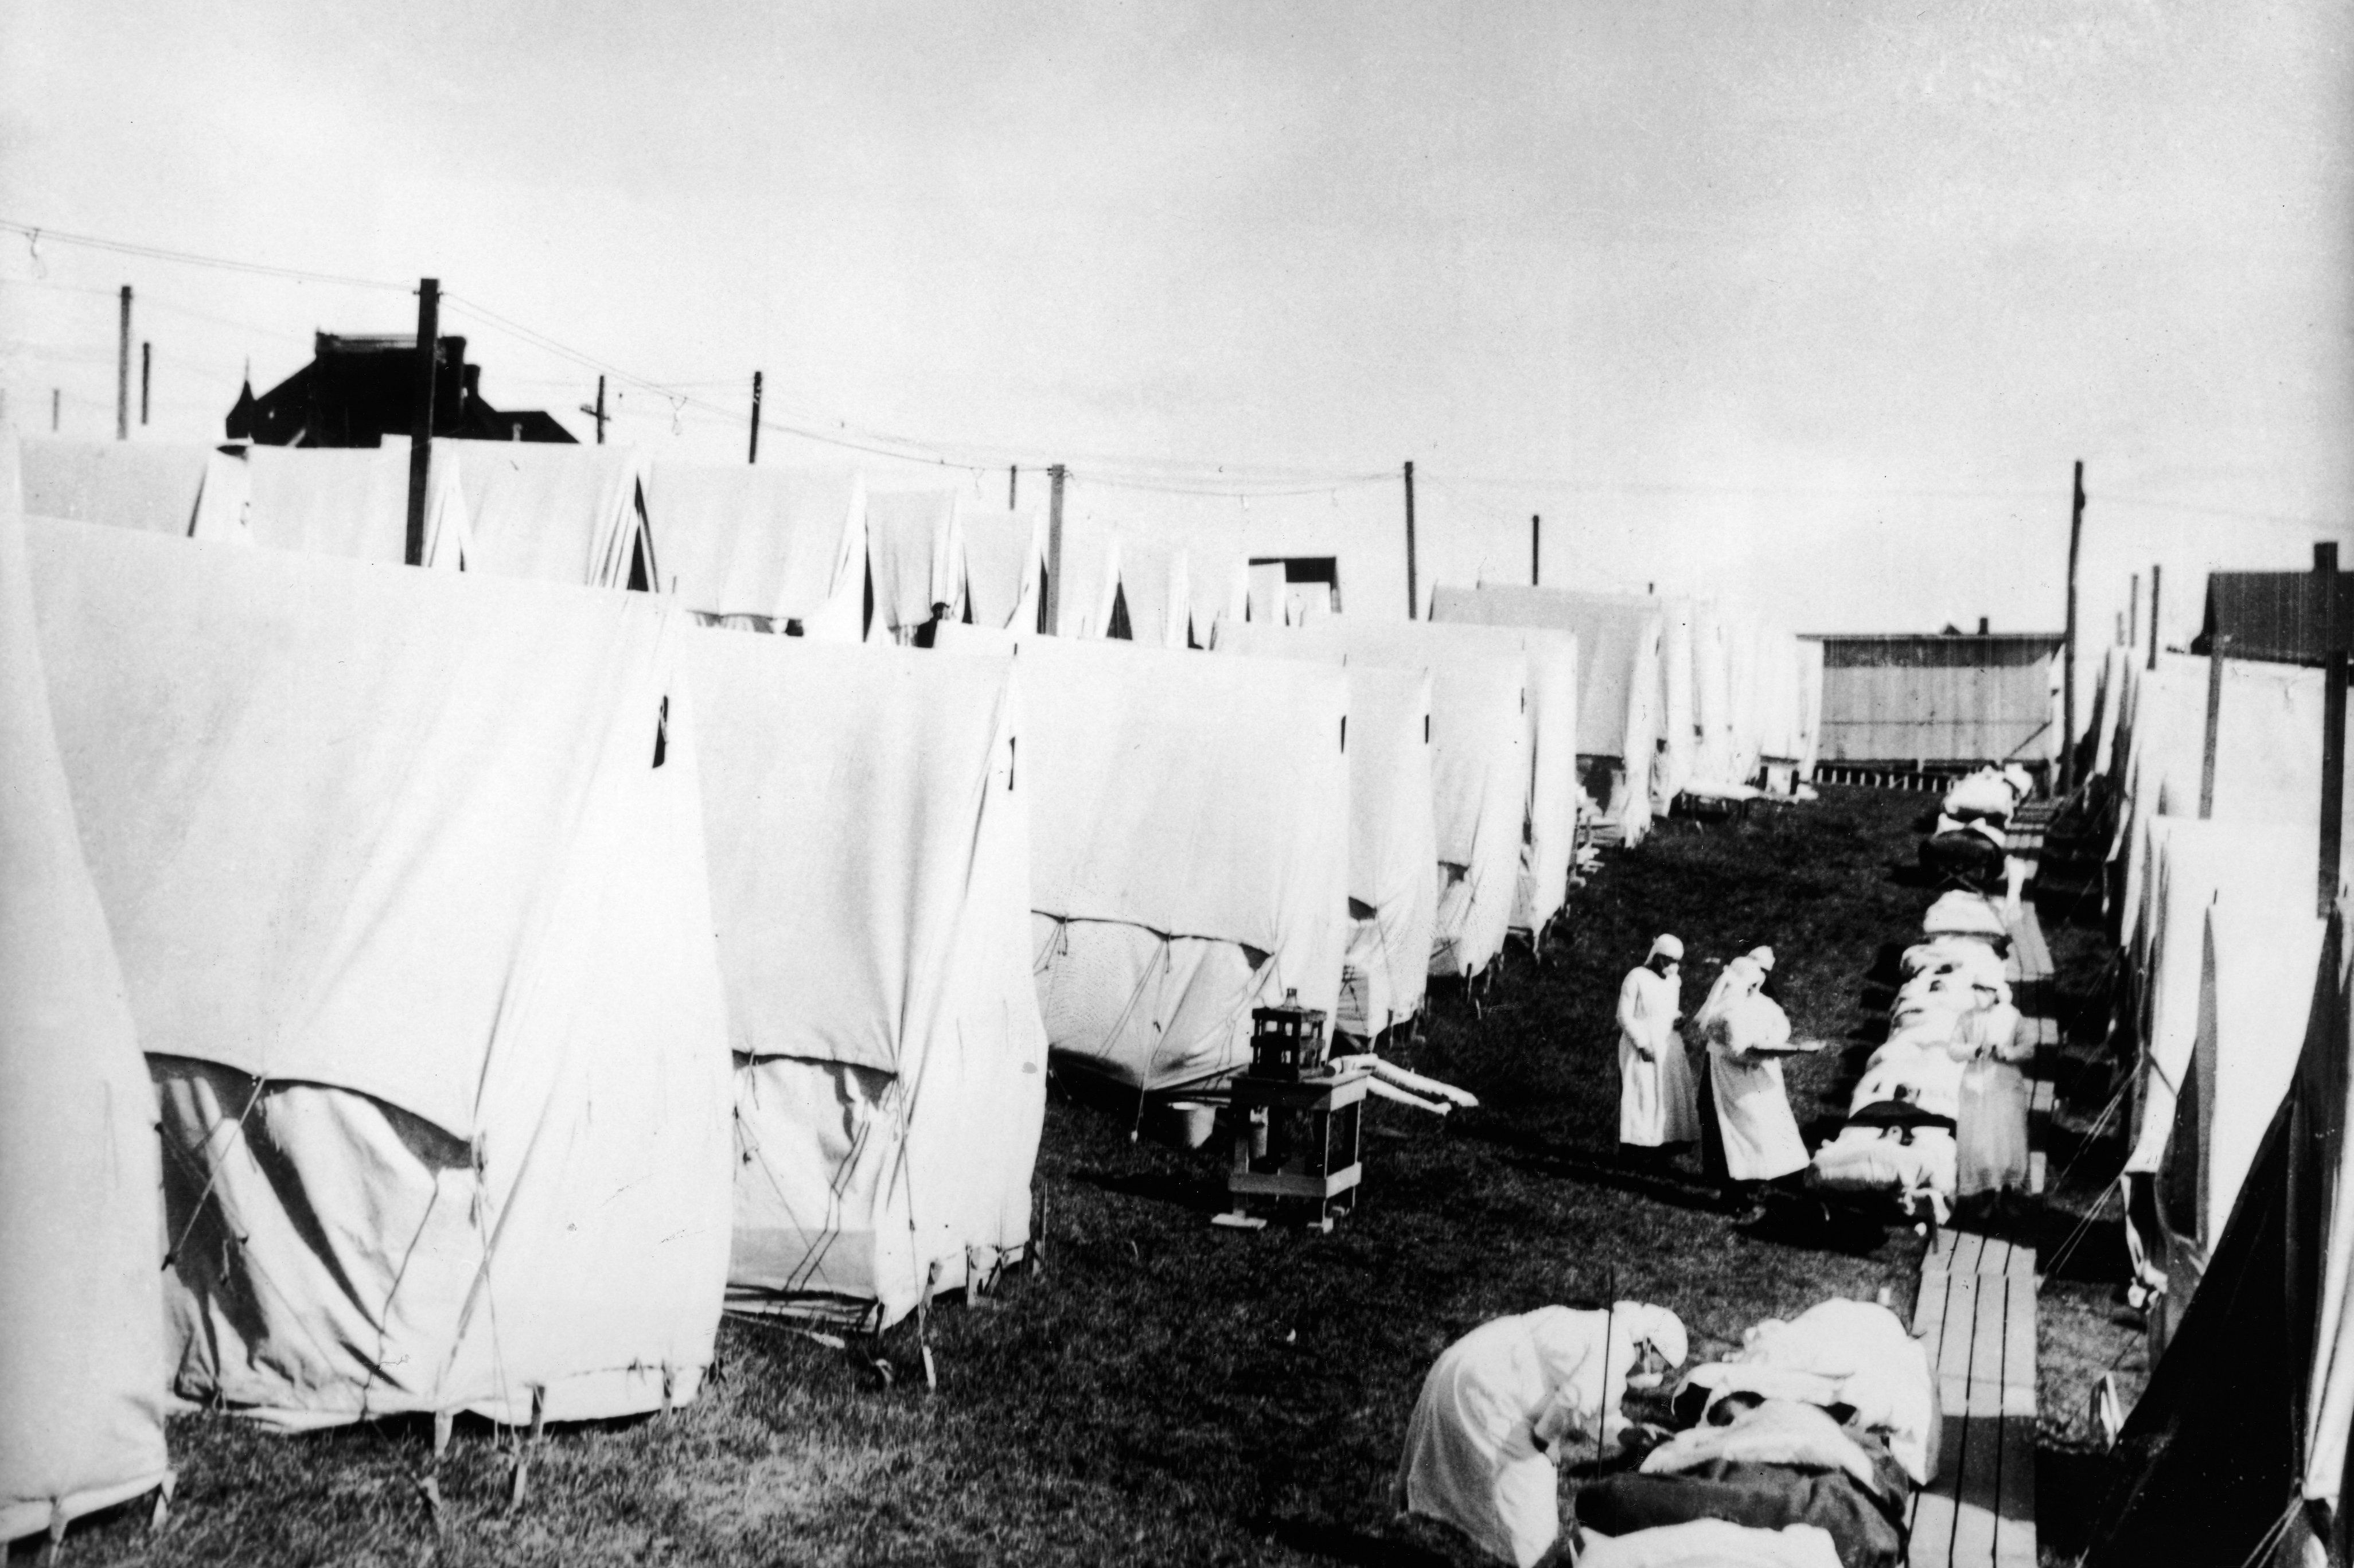 During the 1918 Spanish Flu Pandemic U.S. Army Base Hospital, Camp Beauregard, Louisiana. Tents for influenza patients.